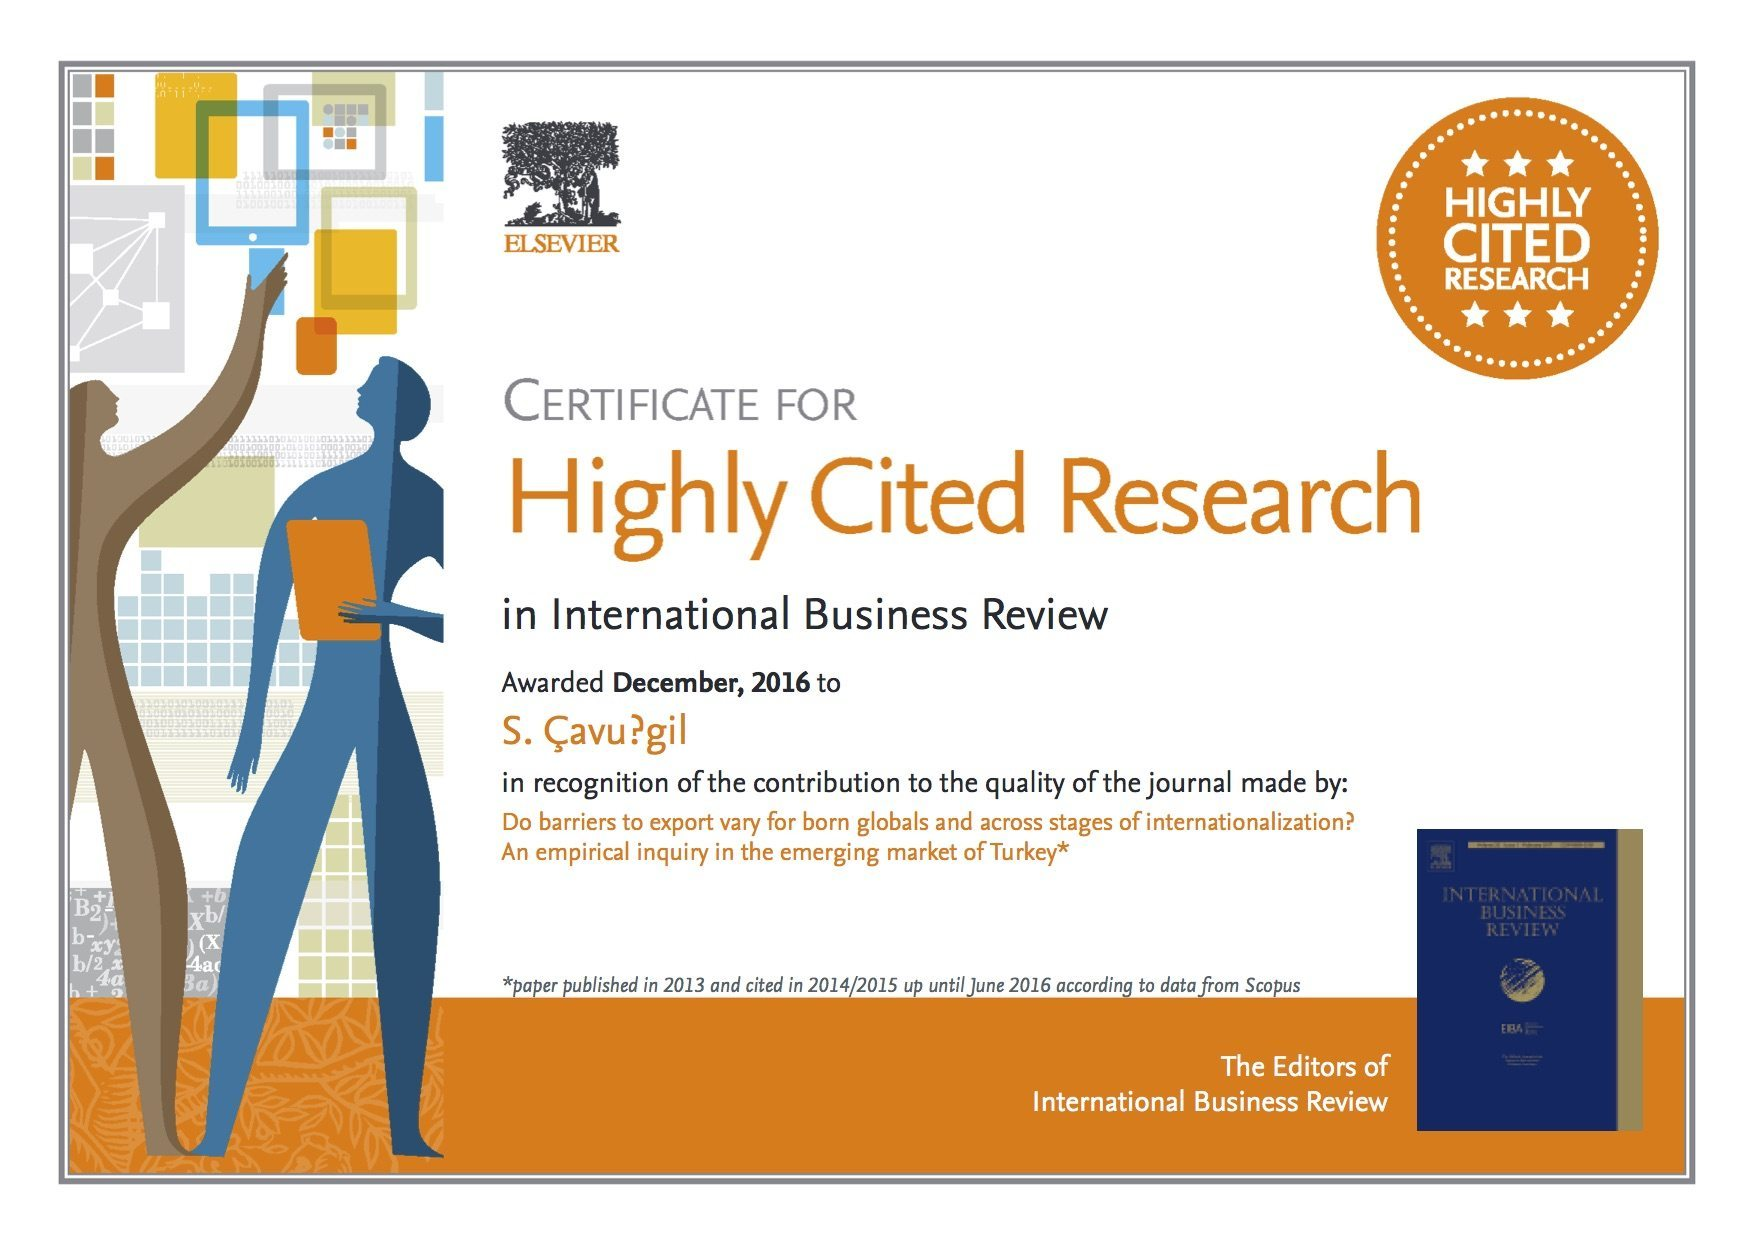 activities archives ciber an empirical inquiry in the emerging market of turkey published in 2013 is one of the most highly cited papers in international business review during